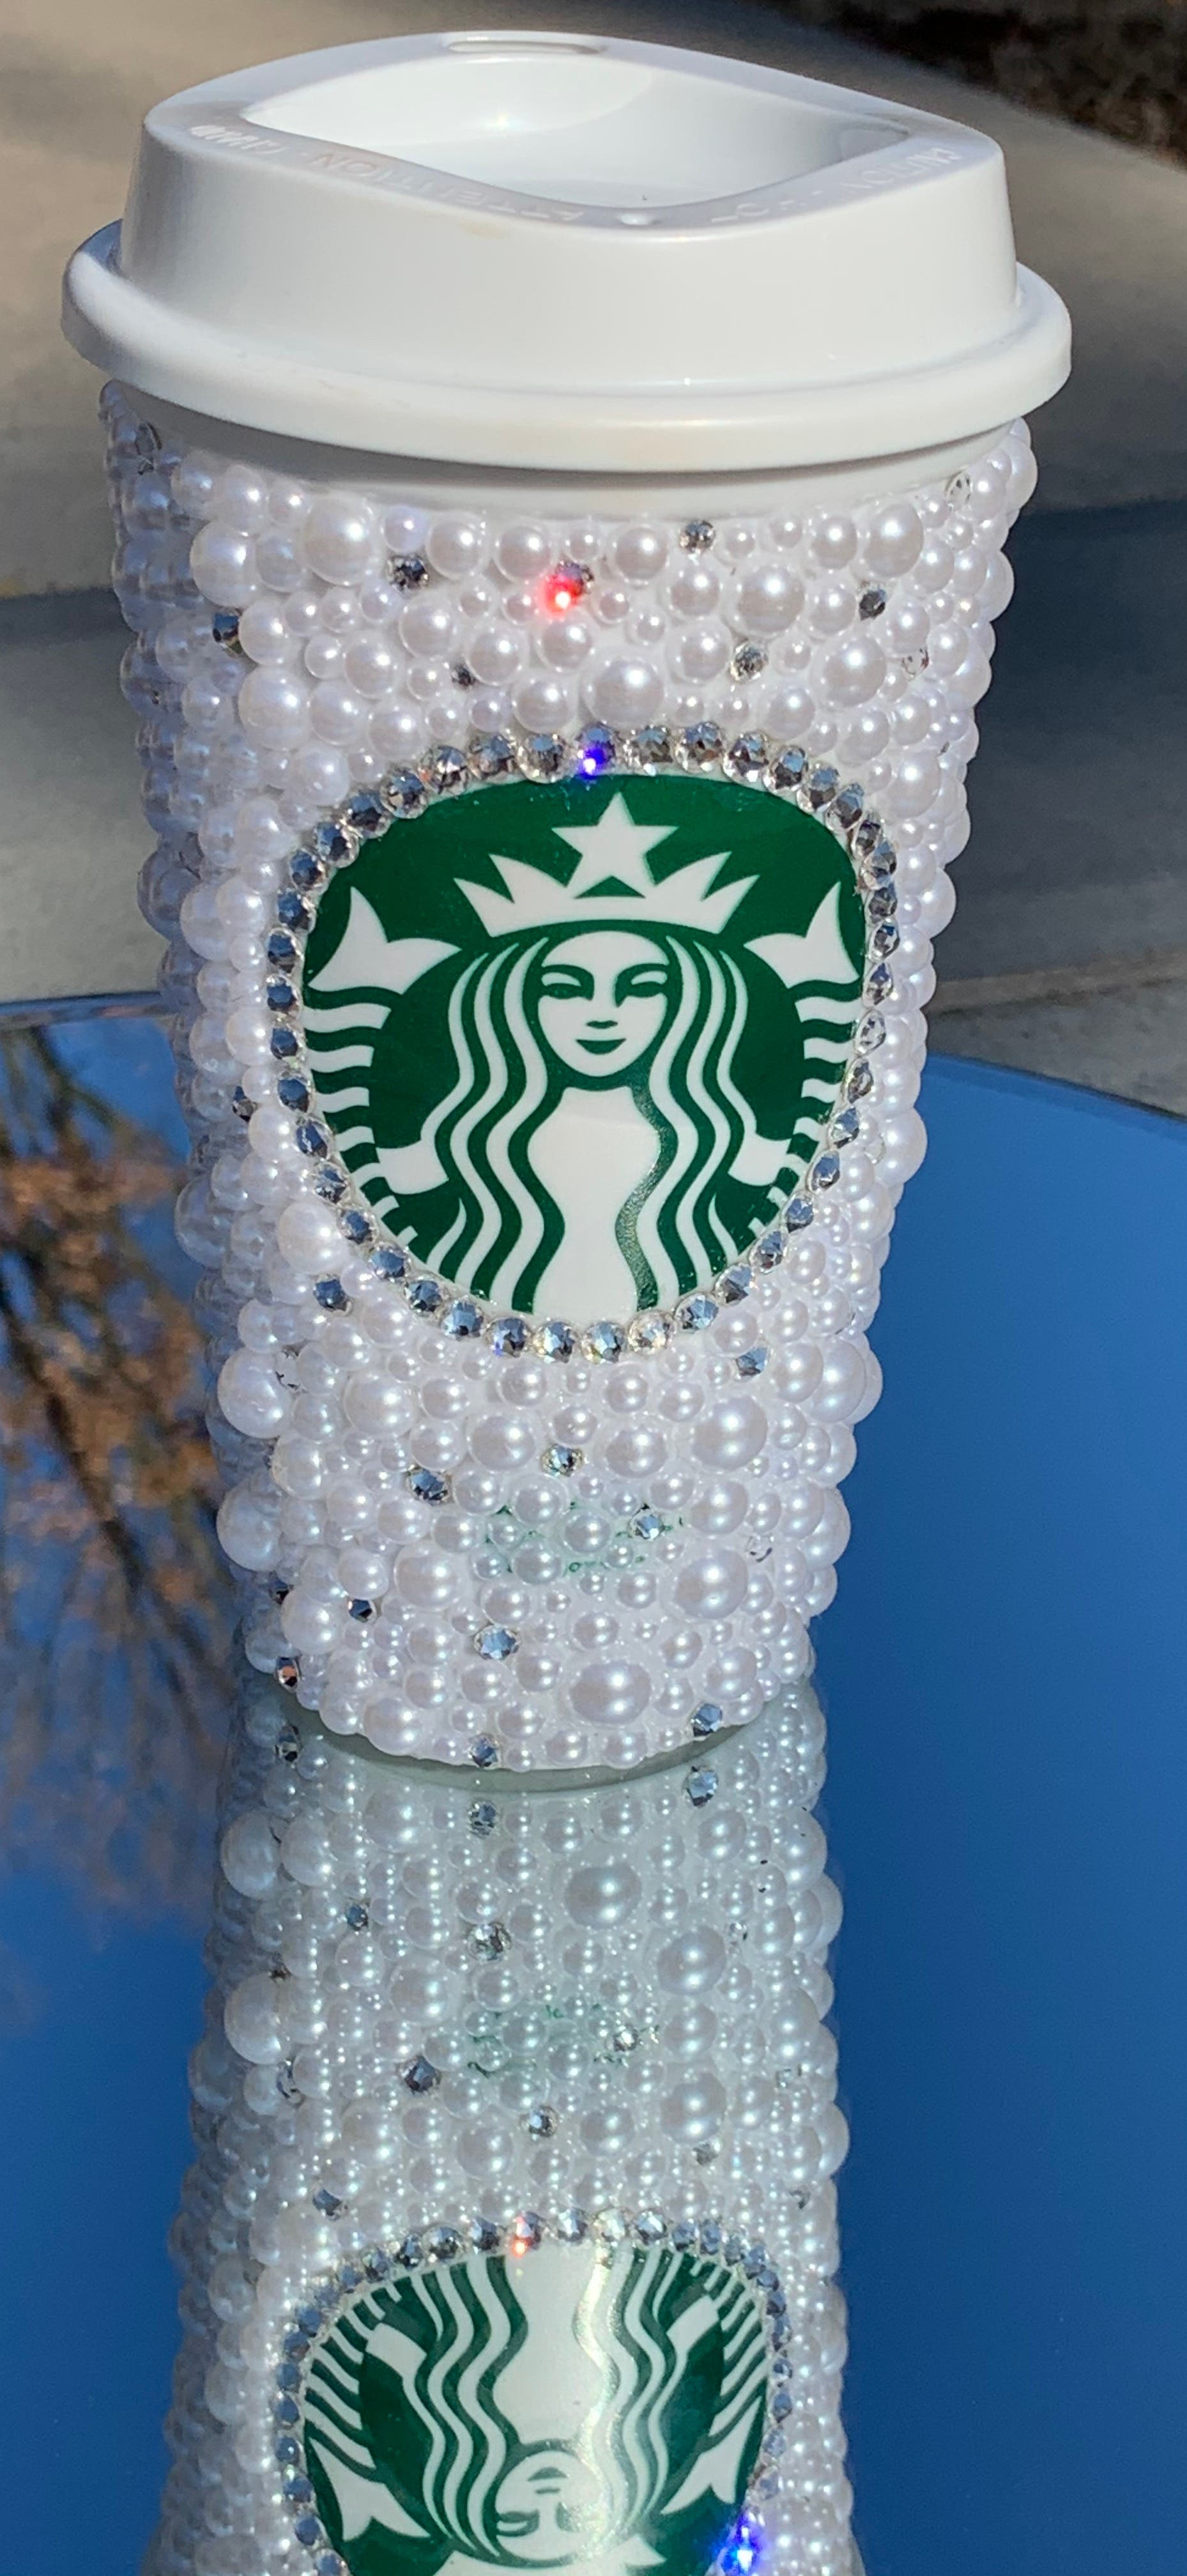 This introductory class will provide you with simple and easy ways to create DIY (do it yourself) crystallized Starbucks Cup that have a professional finish.